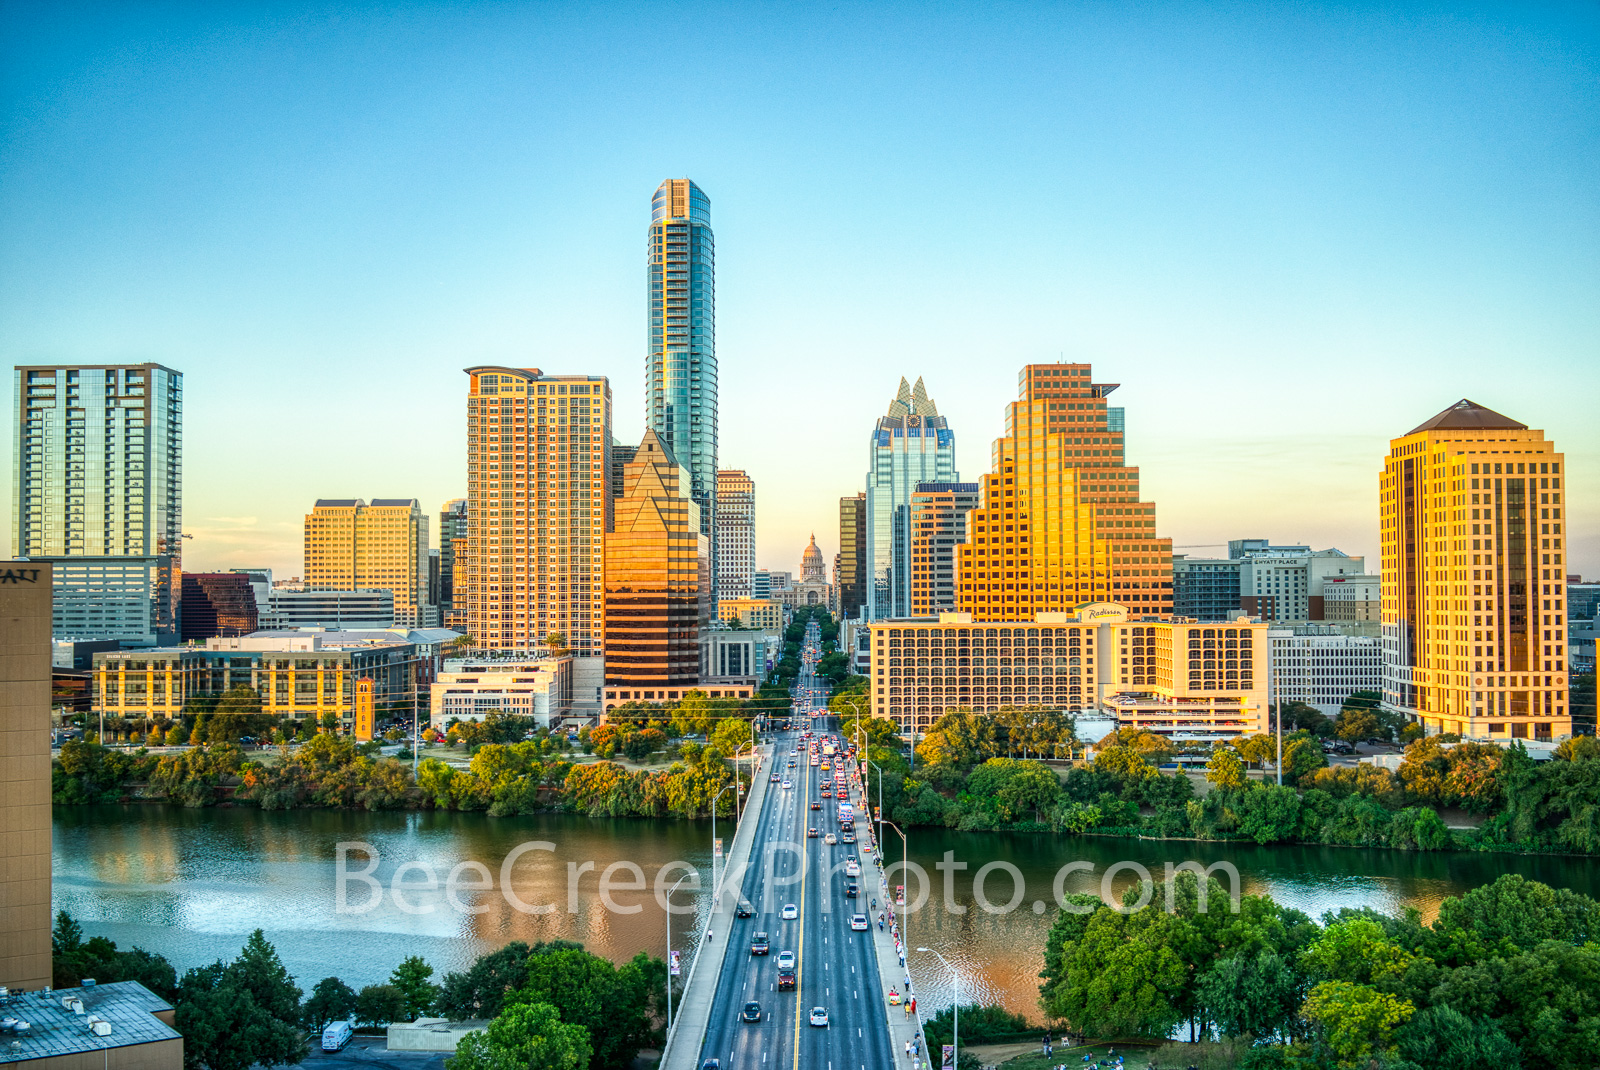 Austin Skyline 2- We captured this aerial image of the City of Austin skyline looking straight down Congress Ave as the...